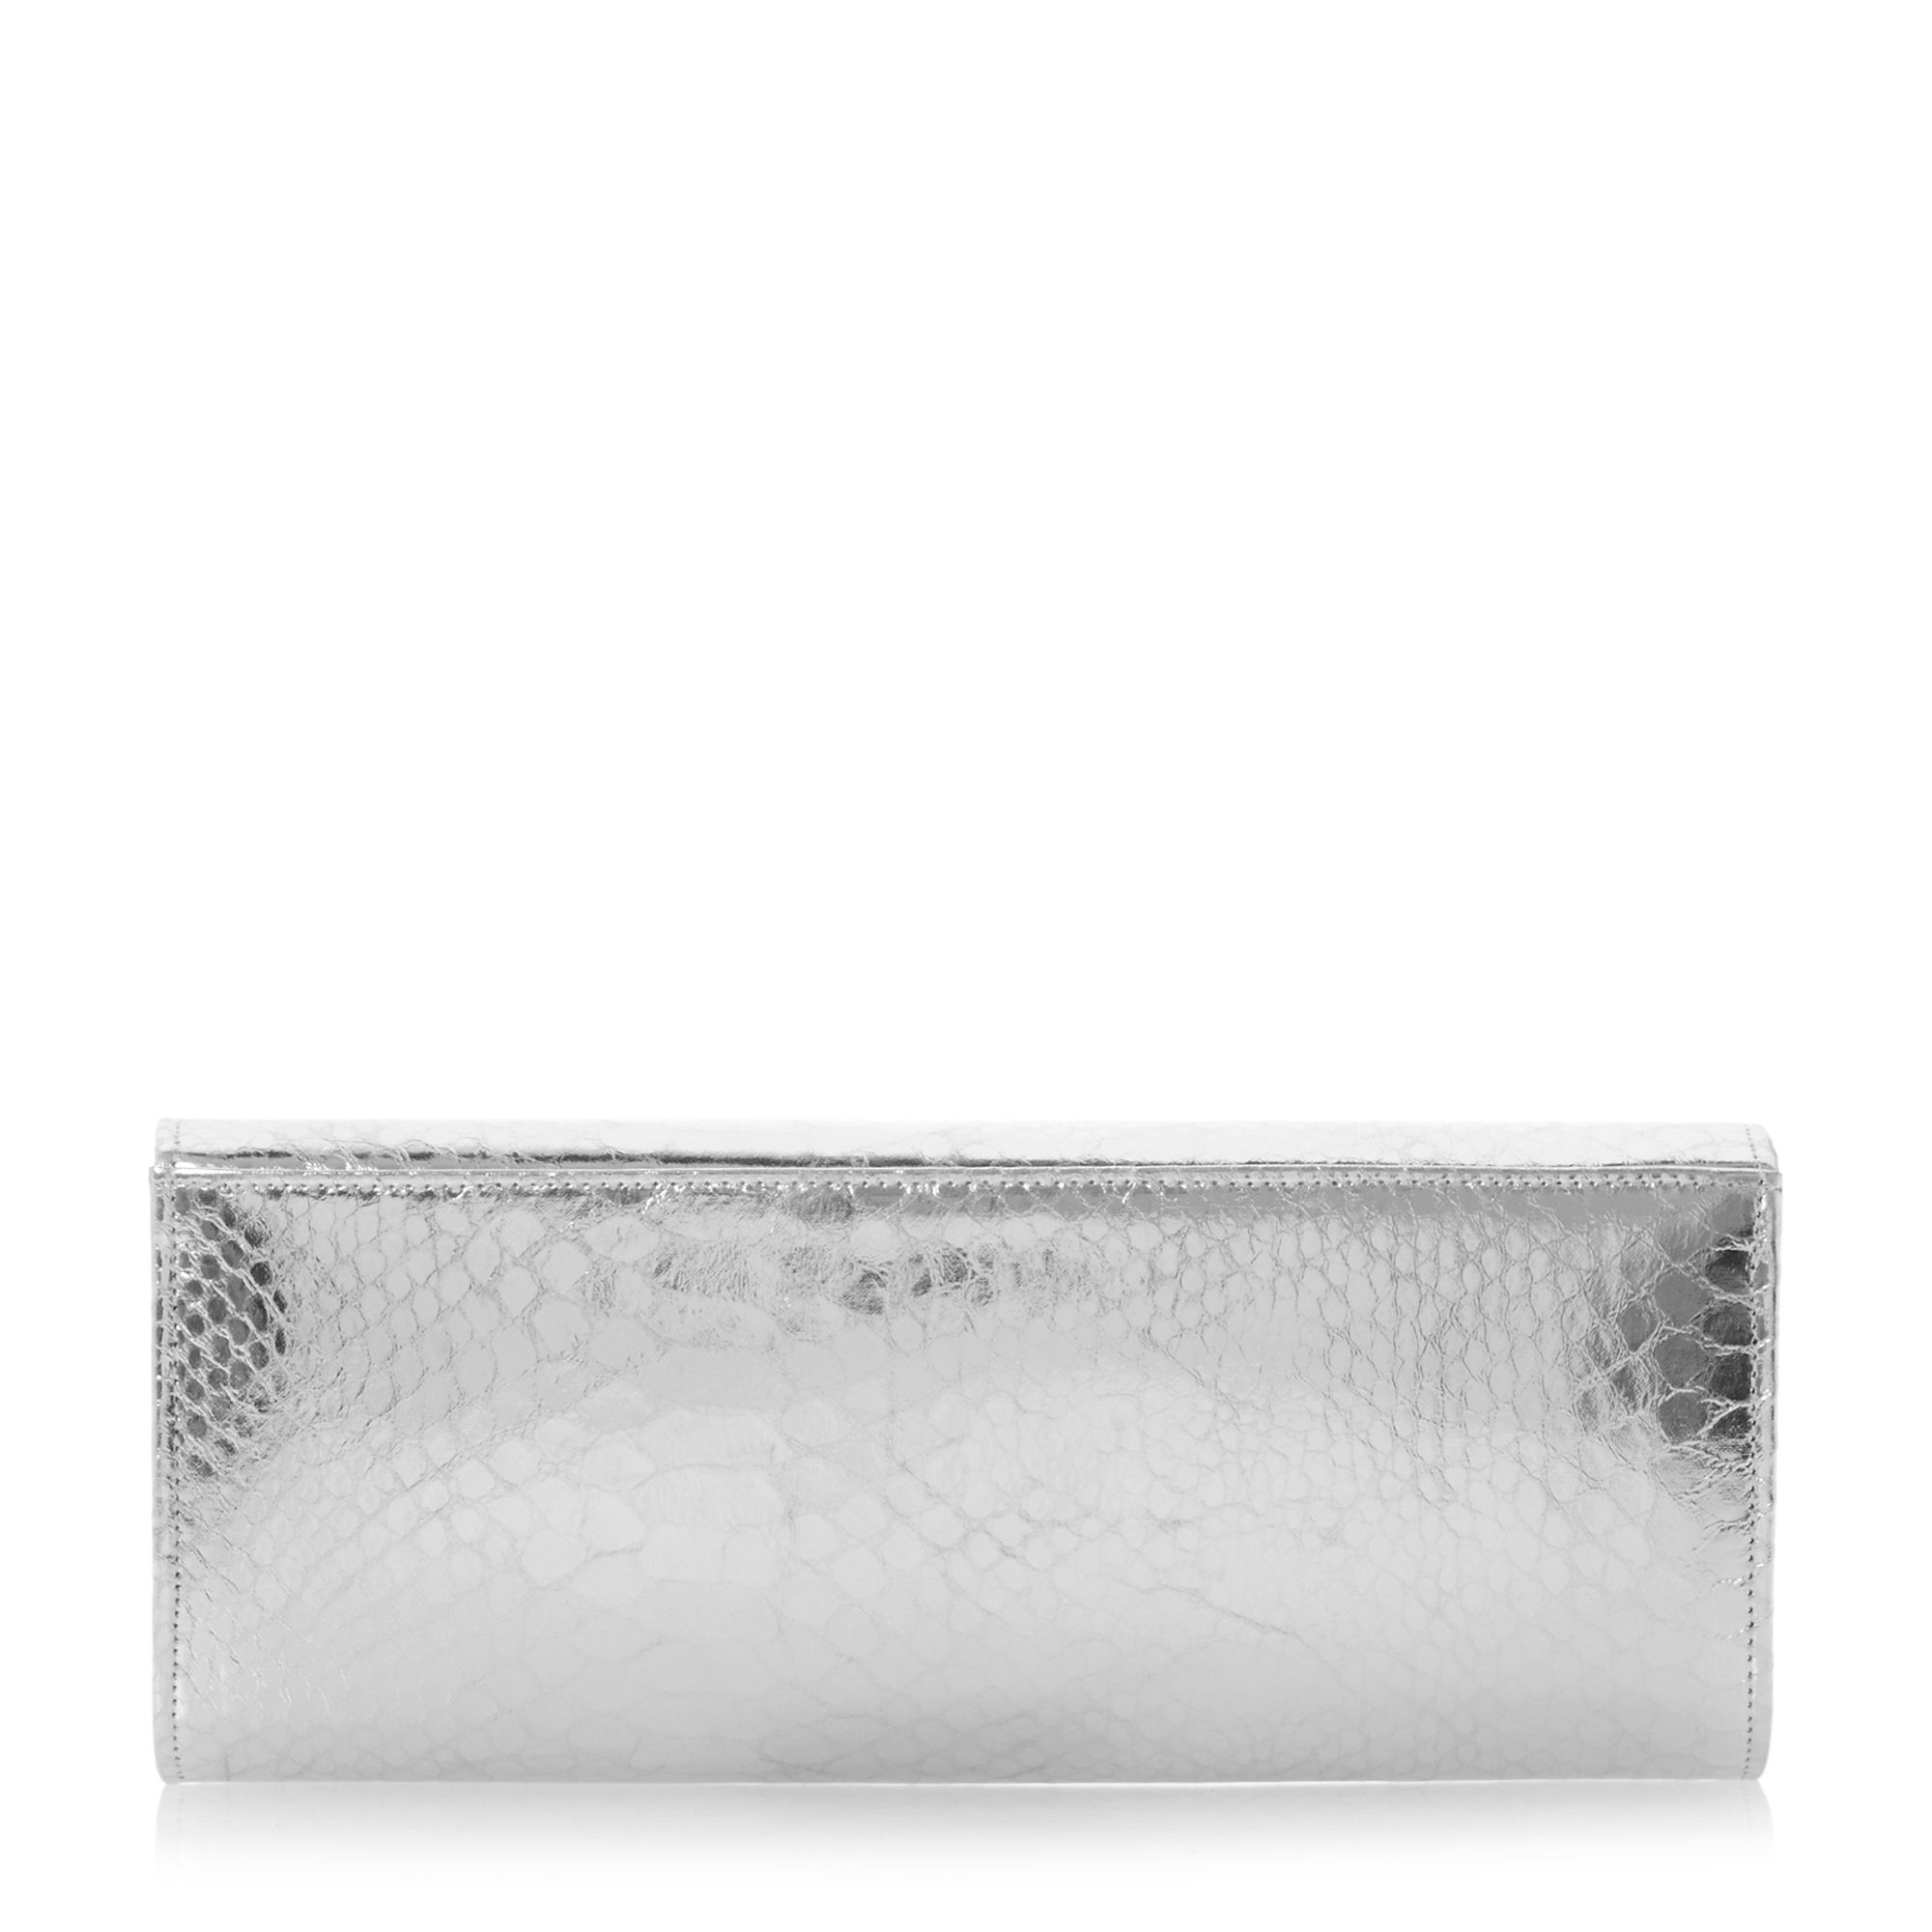 Bestro asymmetric clutch